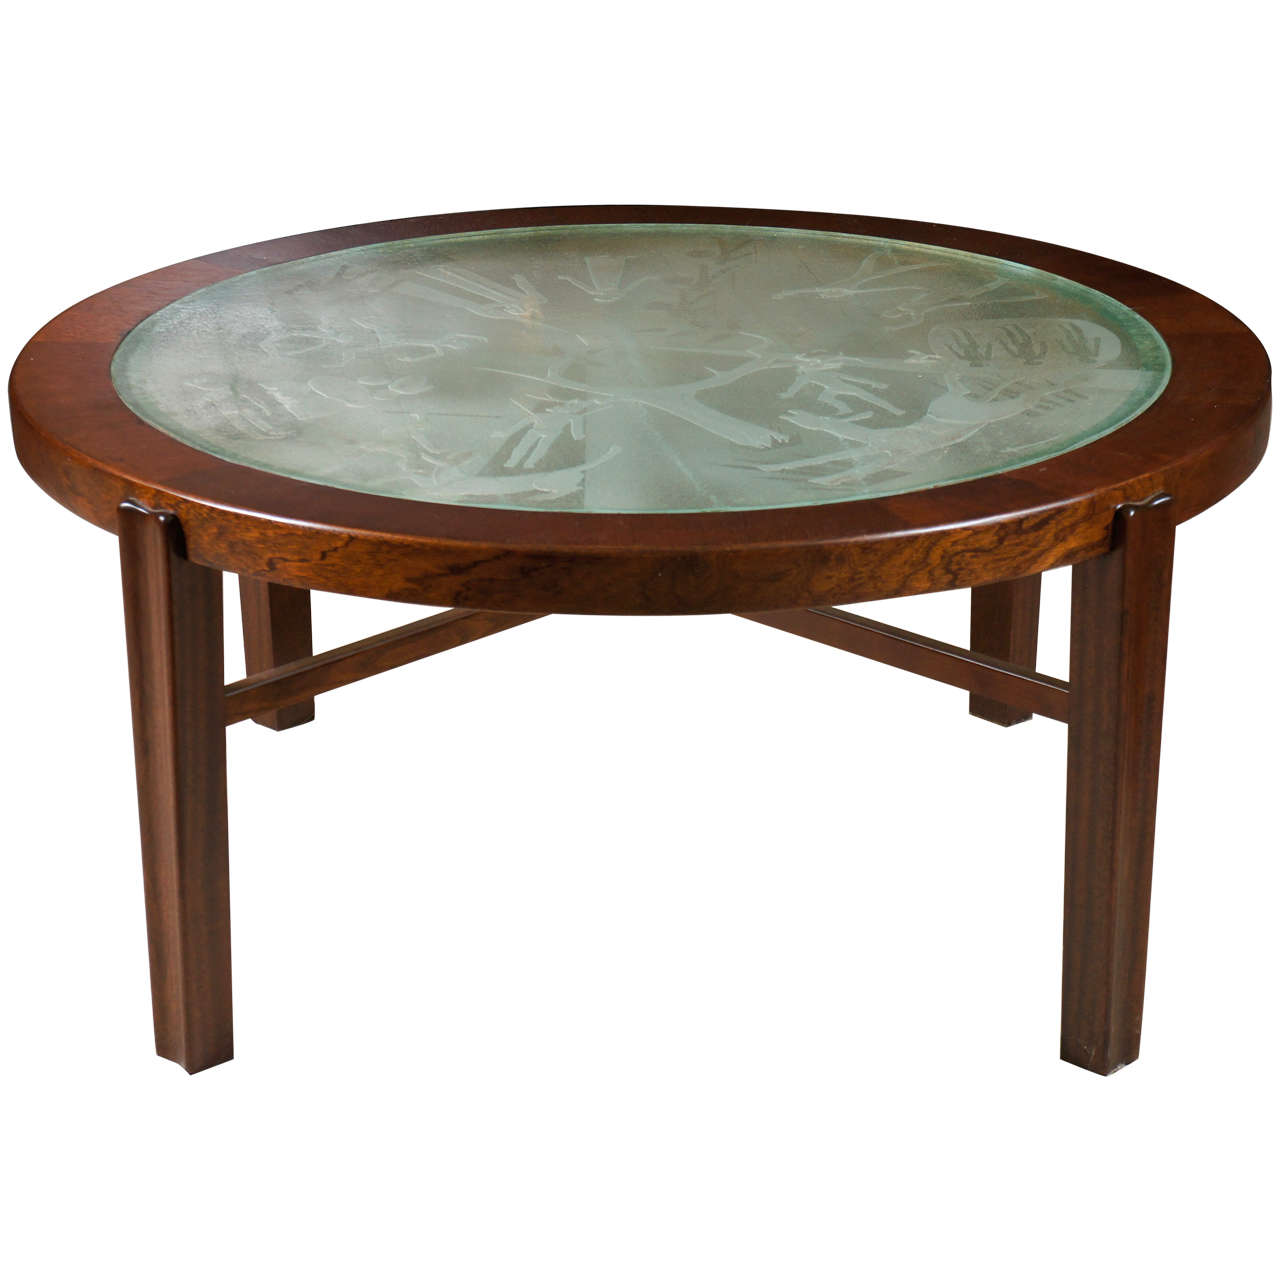 A Fine Swedish Low/Coffee Table with Engraved Glass Top